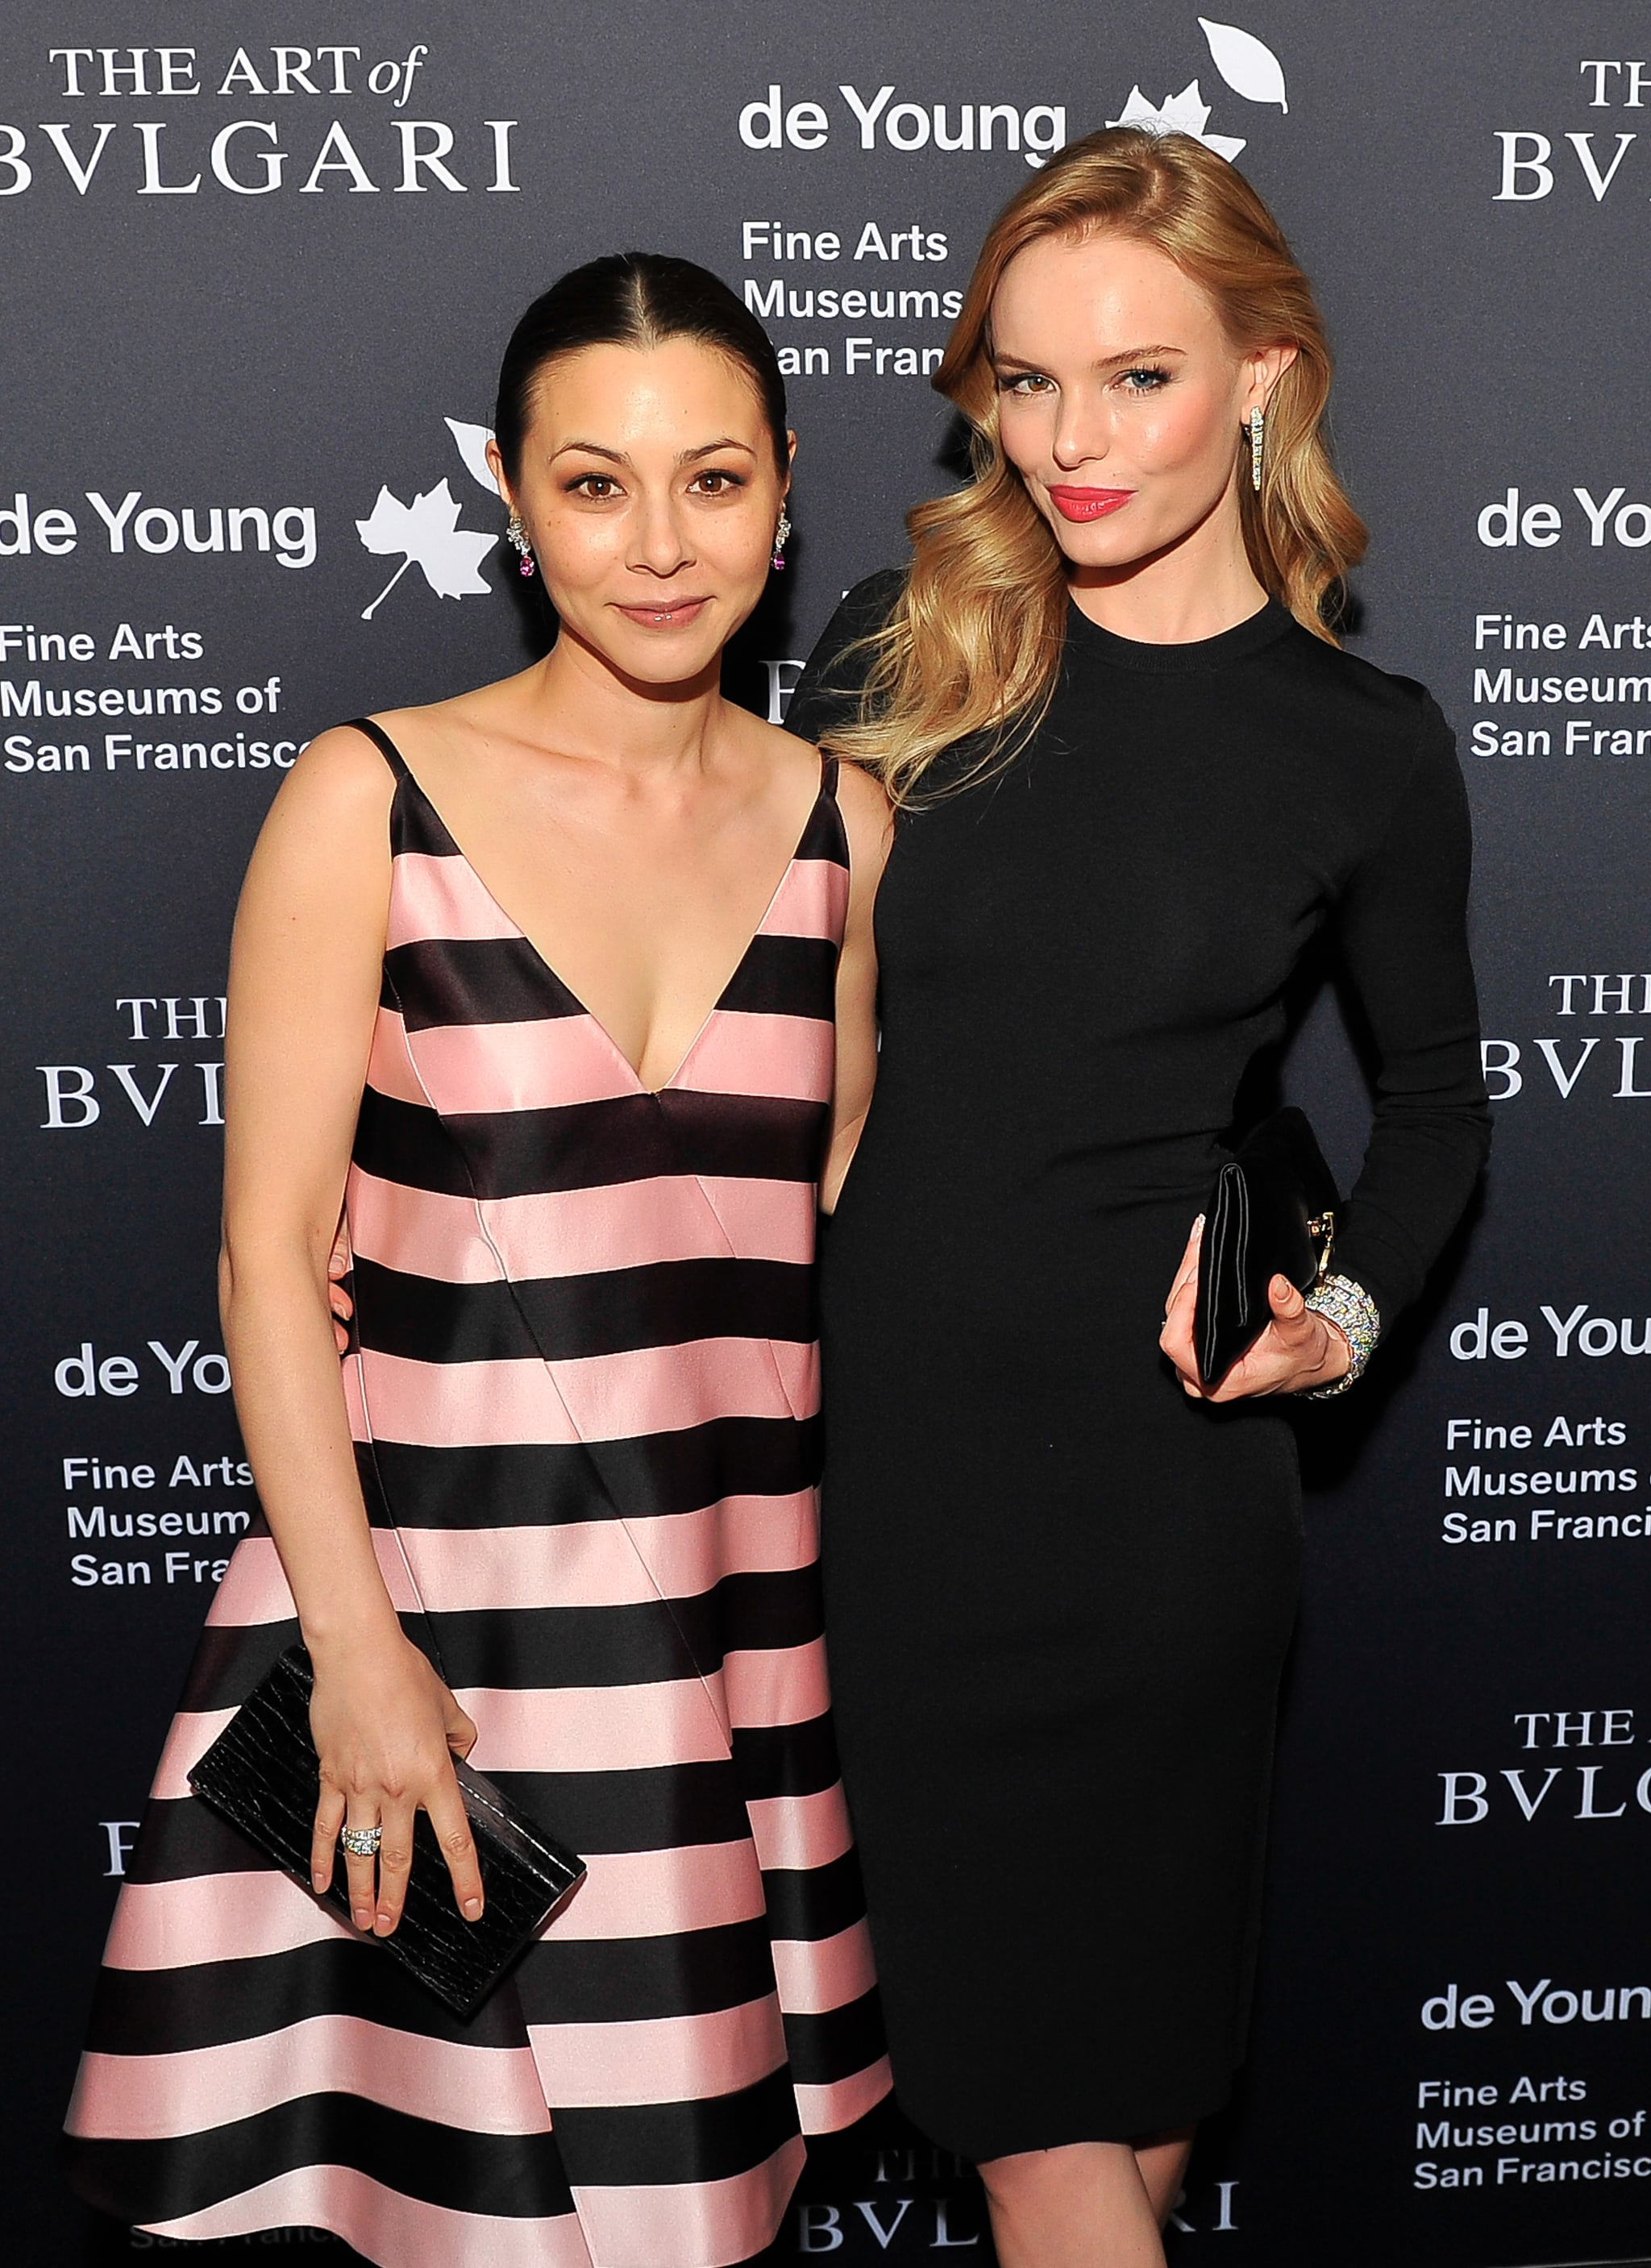 Kate Bosworth posed with China Chow at the Bulgari event.